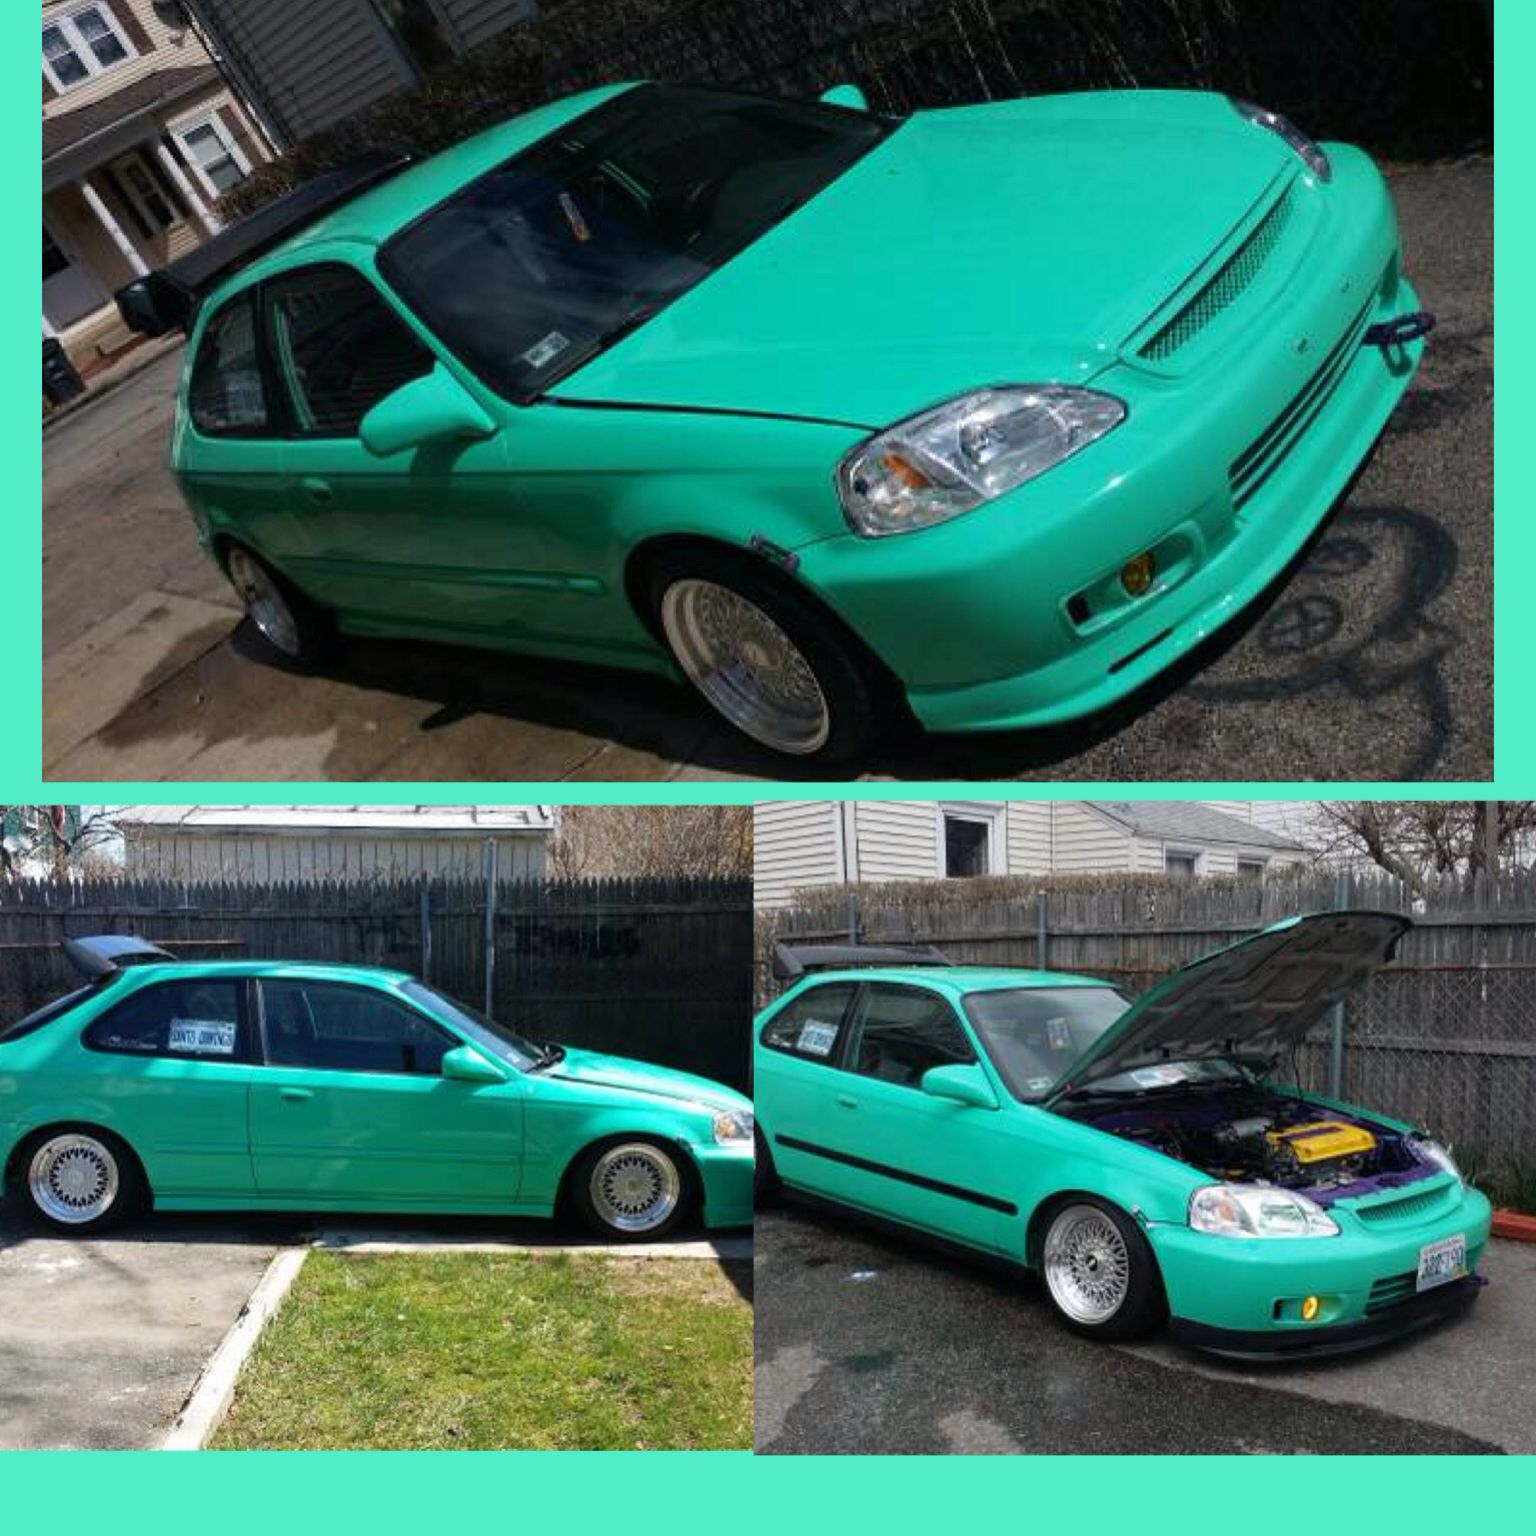 Found This 2000 Honda Civic On Craigslist For $5000. Fave